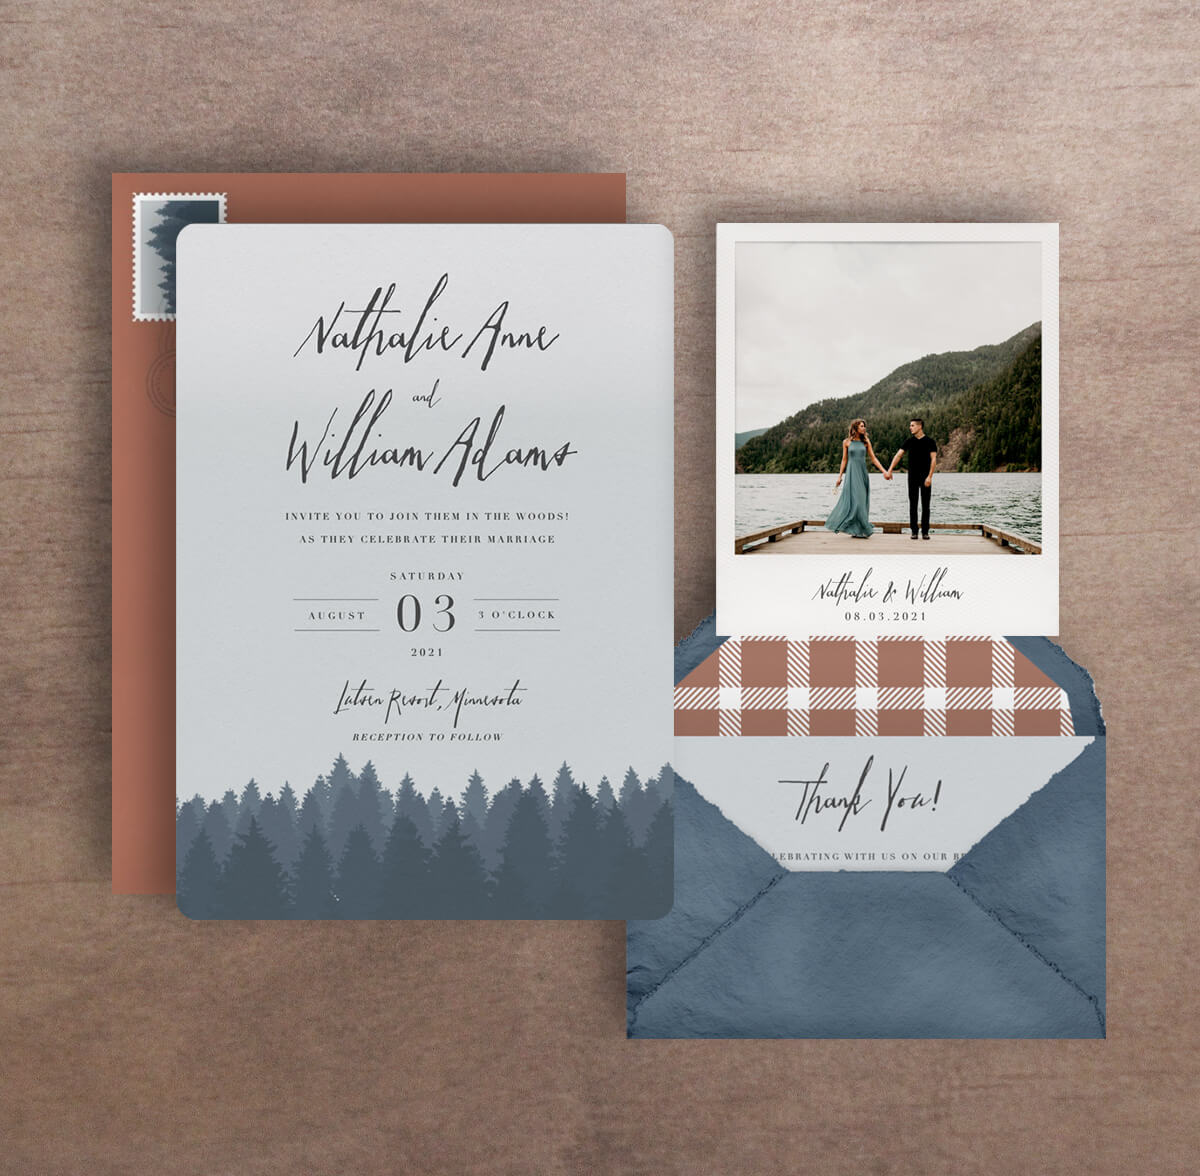 Paperless Wedding Invitations - Ombre Tree Design